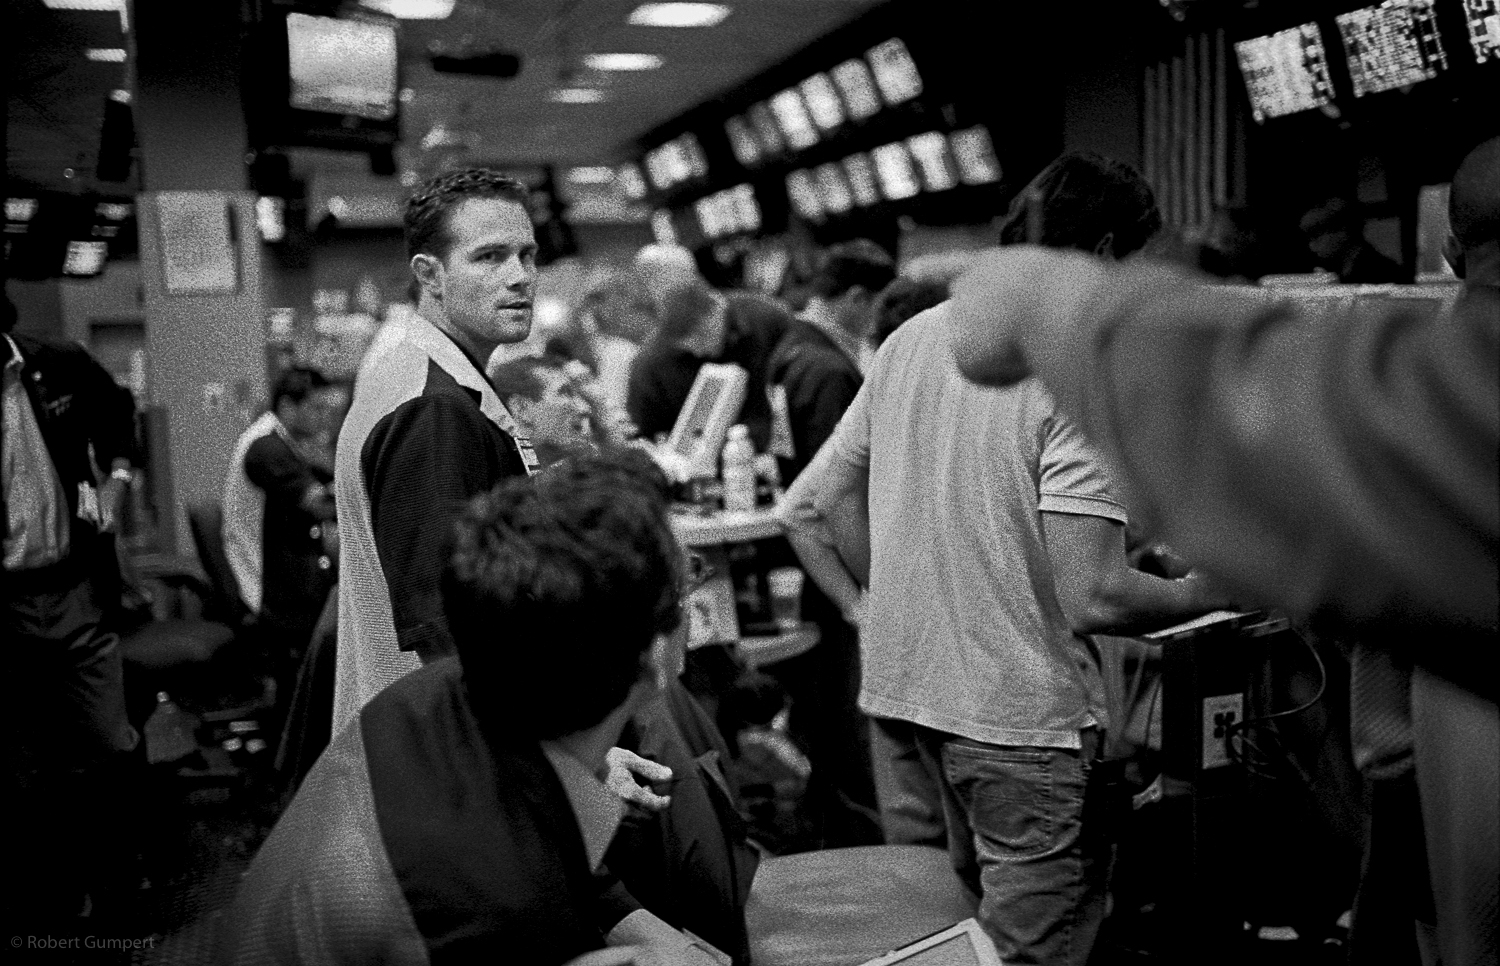 San Francisco, CA. 2003: Traders on the floor of the Pacific Exchange argue about a trade.